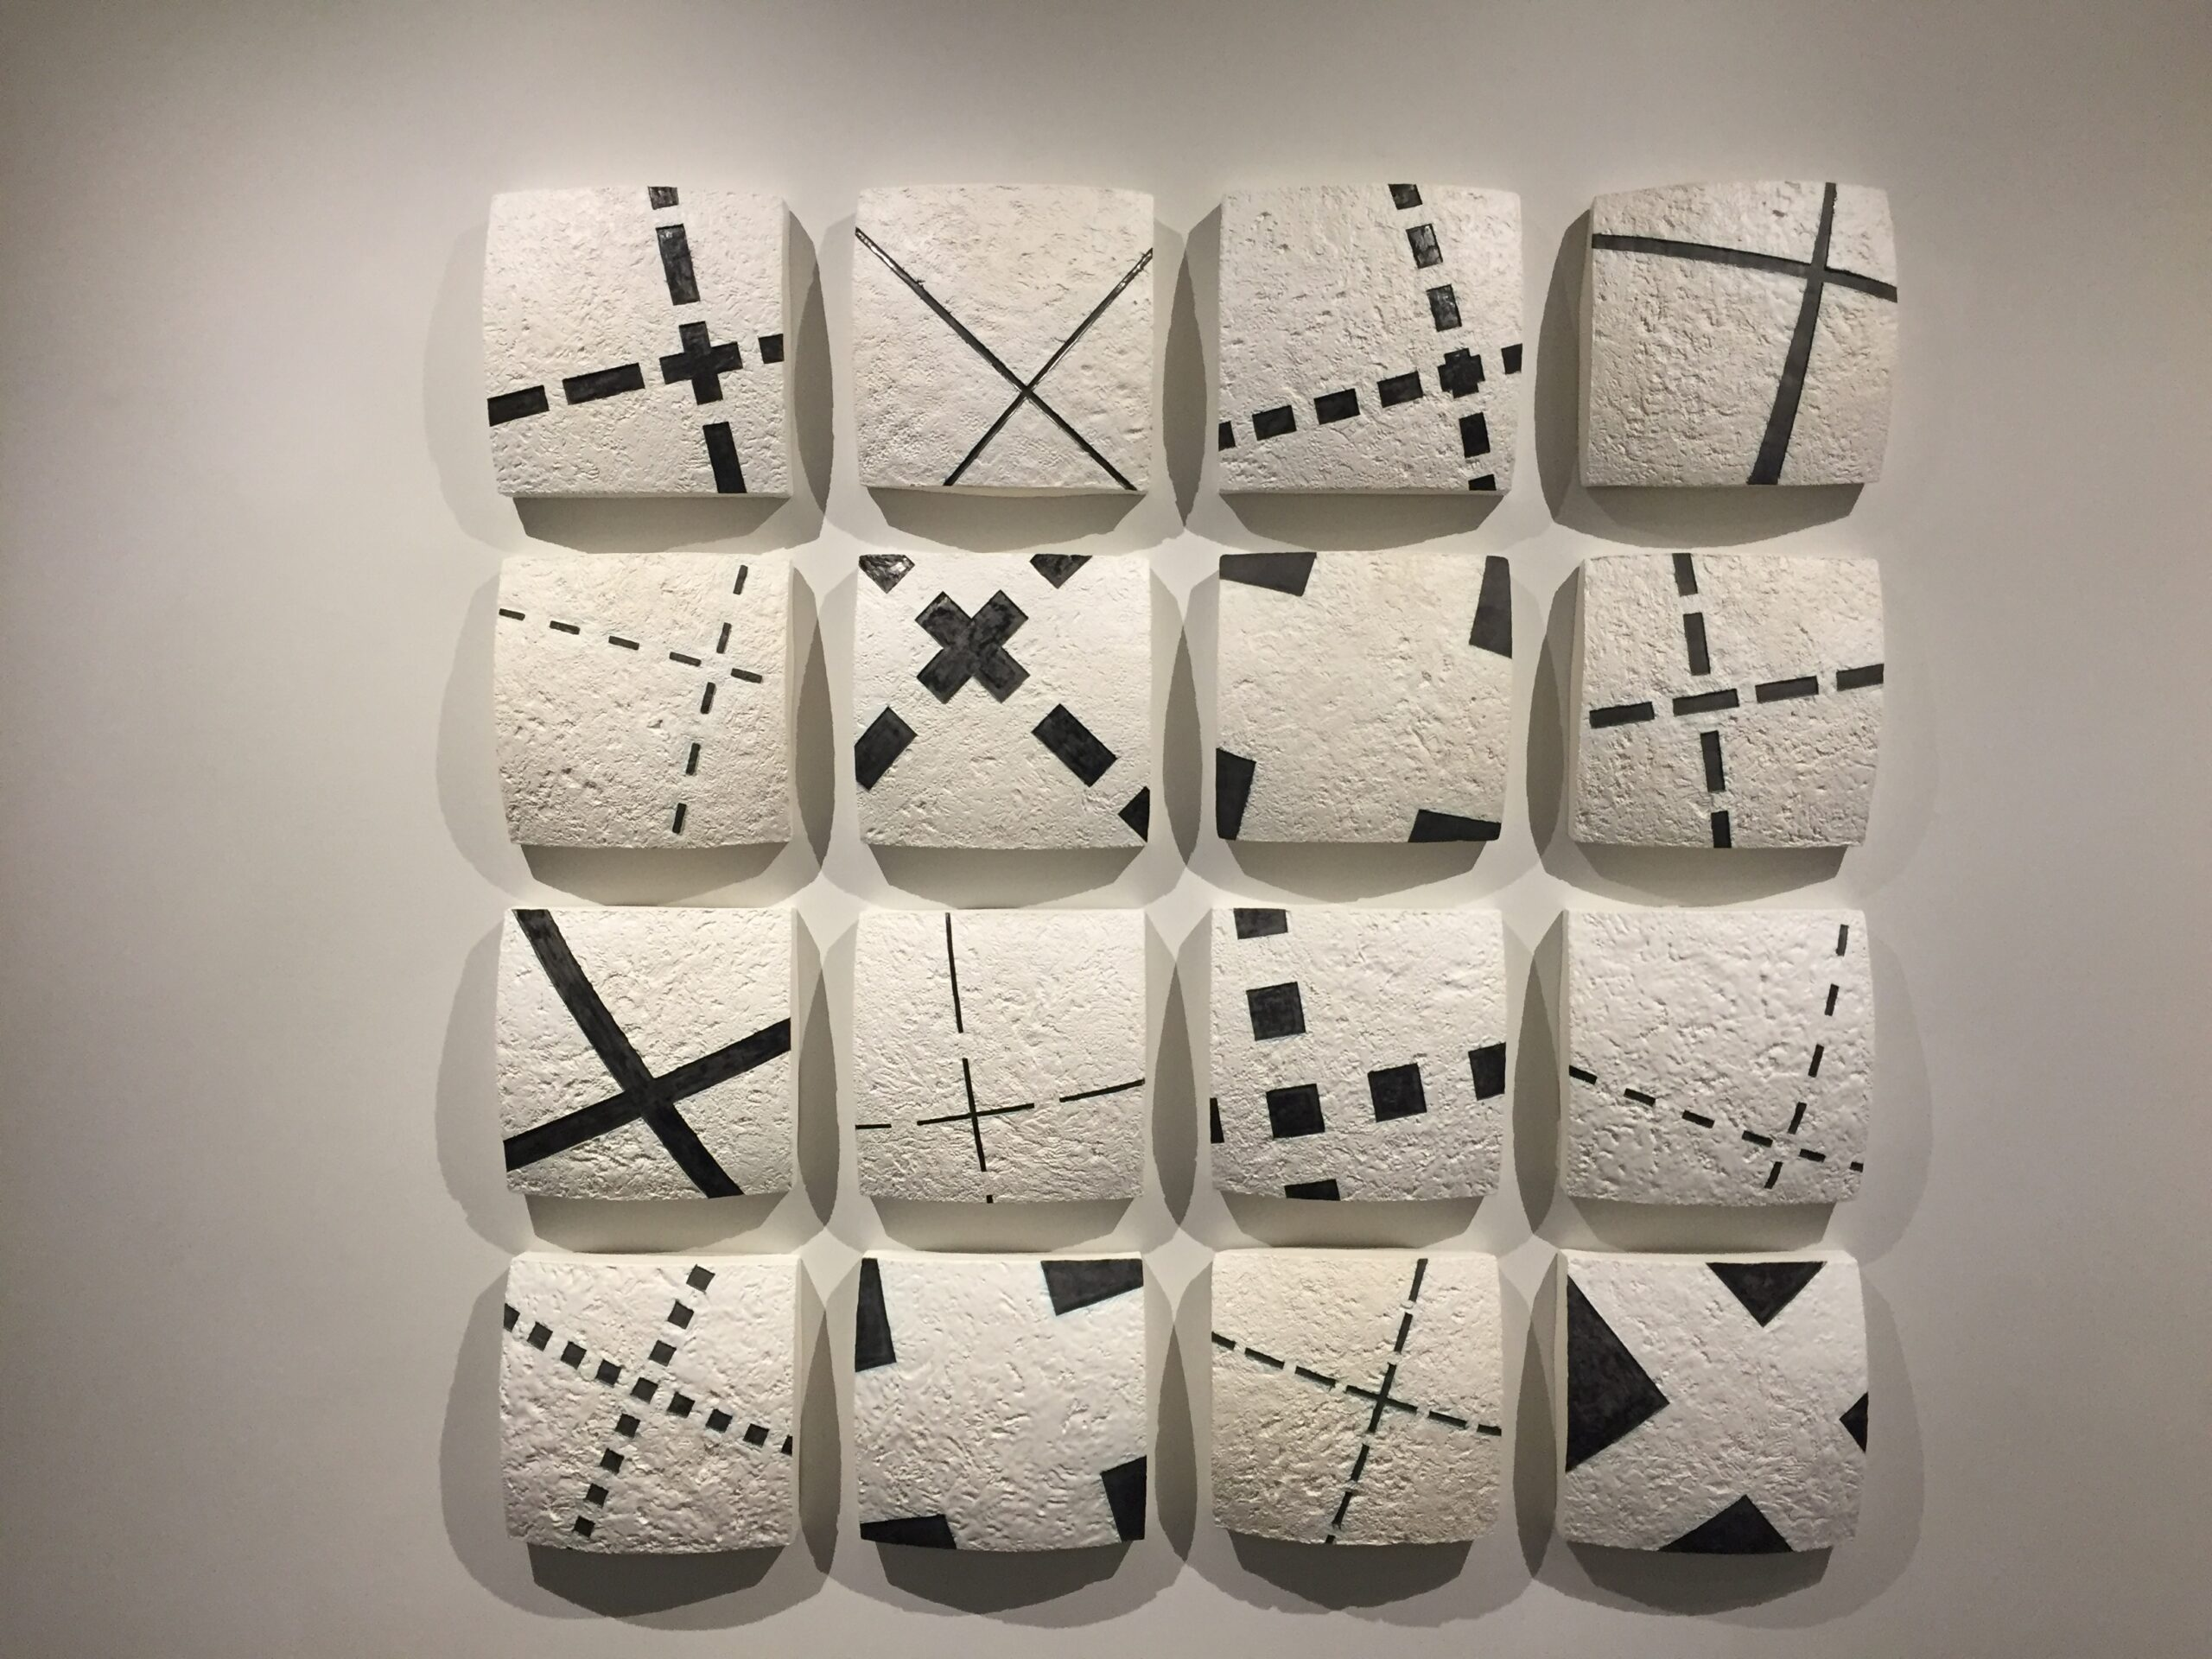 Group of 16 series X ceramic tablets by Gregor Turk